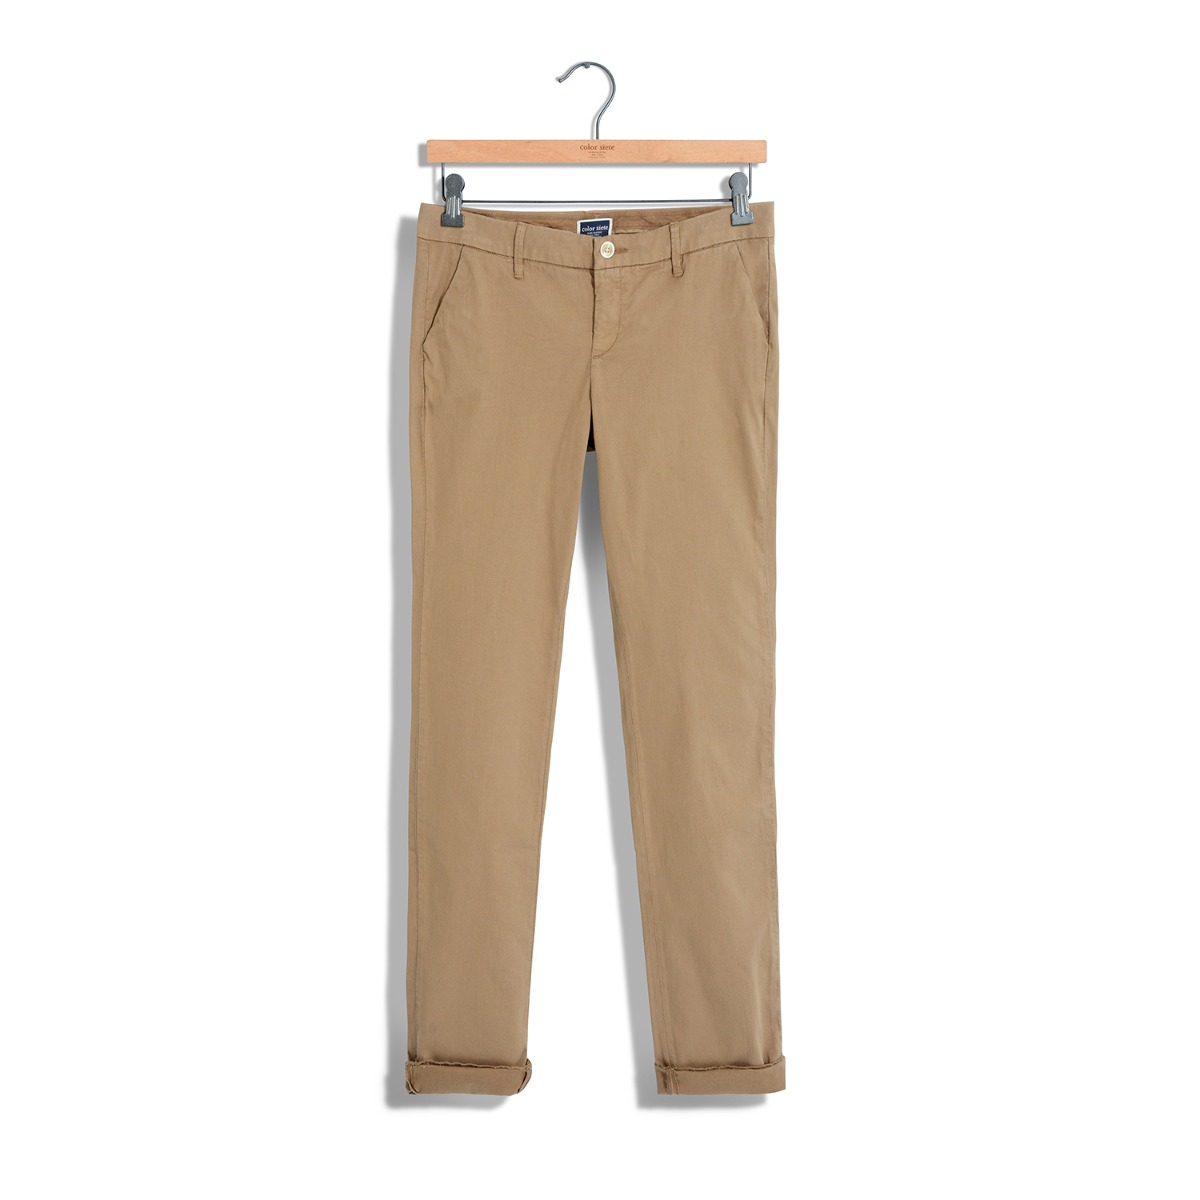 46b2039a12 Pantalon Chino Color Siete Para Mujer - Cafe -   169.900 en Mercado ...